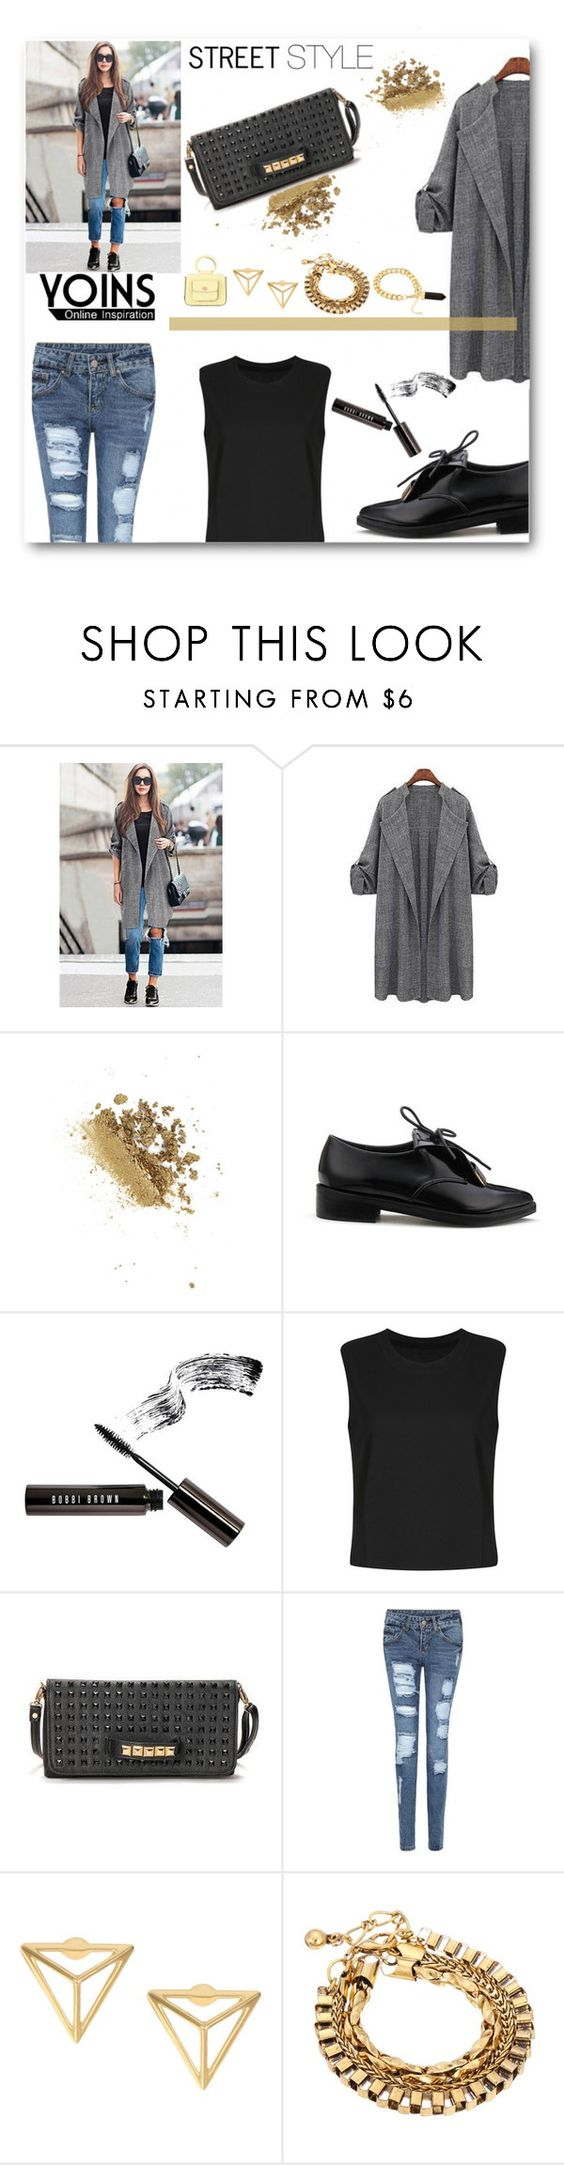 """""""Street Style - YOINS - Set"""" by joana-santos-duarte ❤ liked on Polyvore featuring Topshop and Bobbi Brown Cosmetics"""